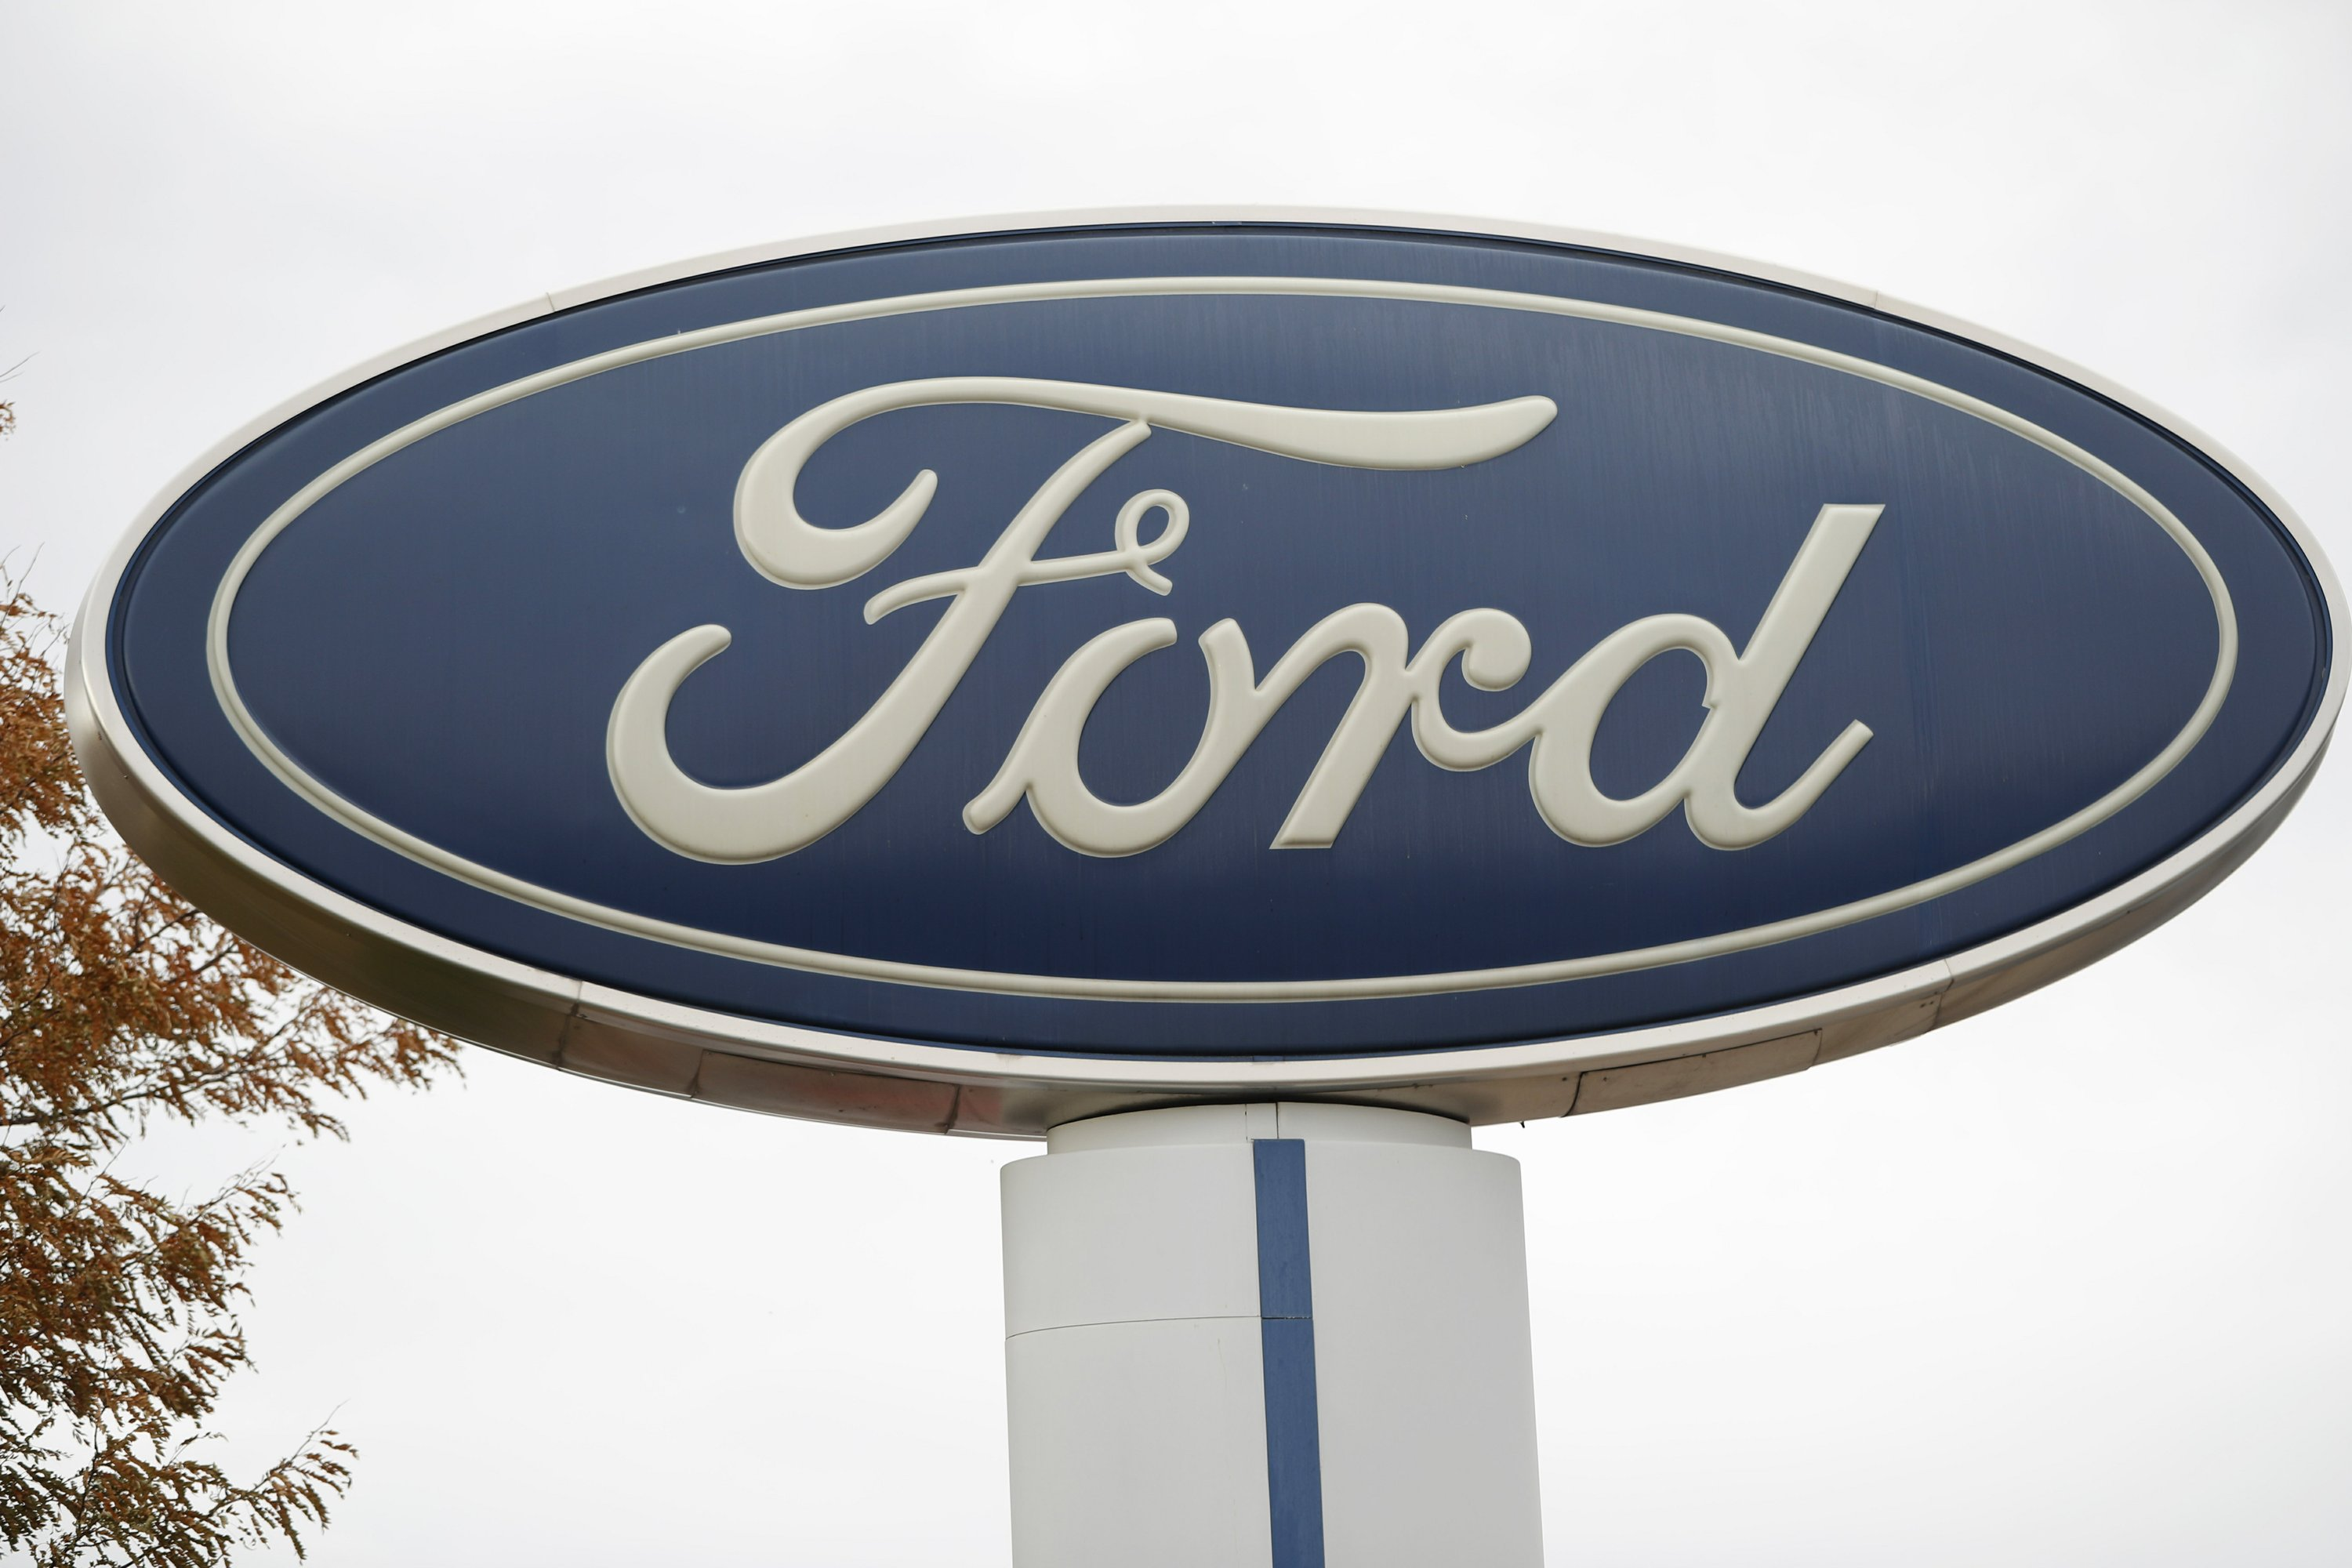 Ford CFO to leave for tech company after 18 months